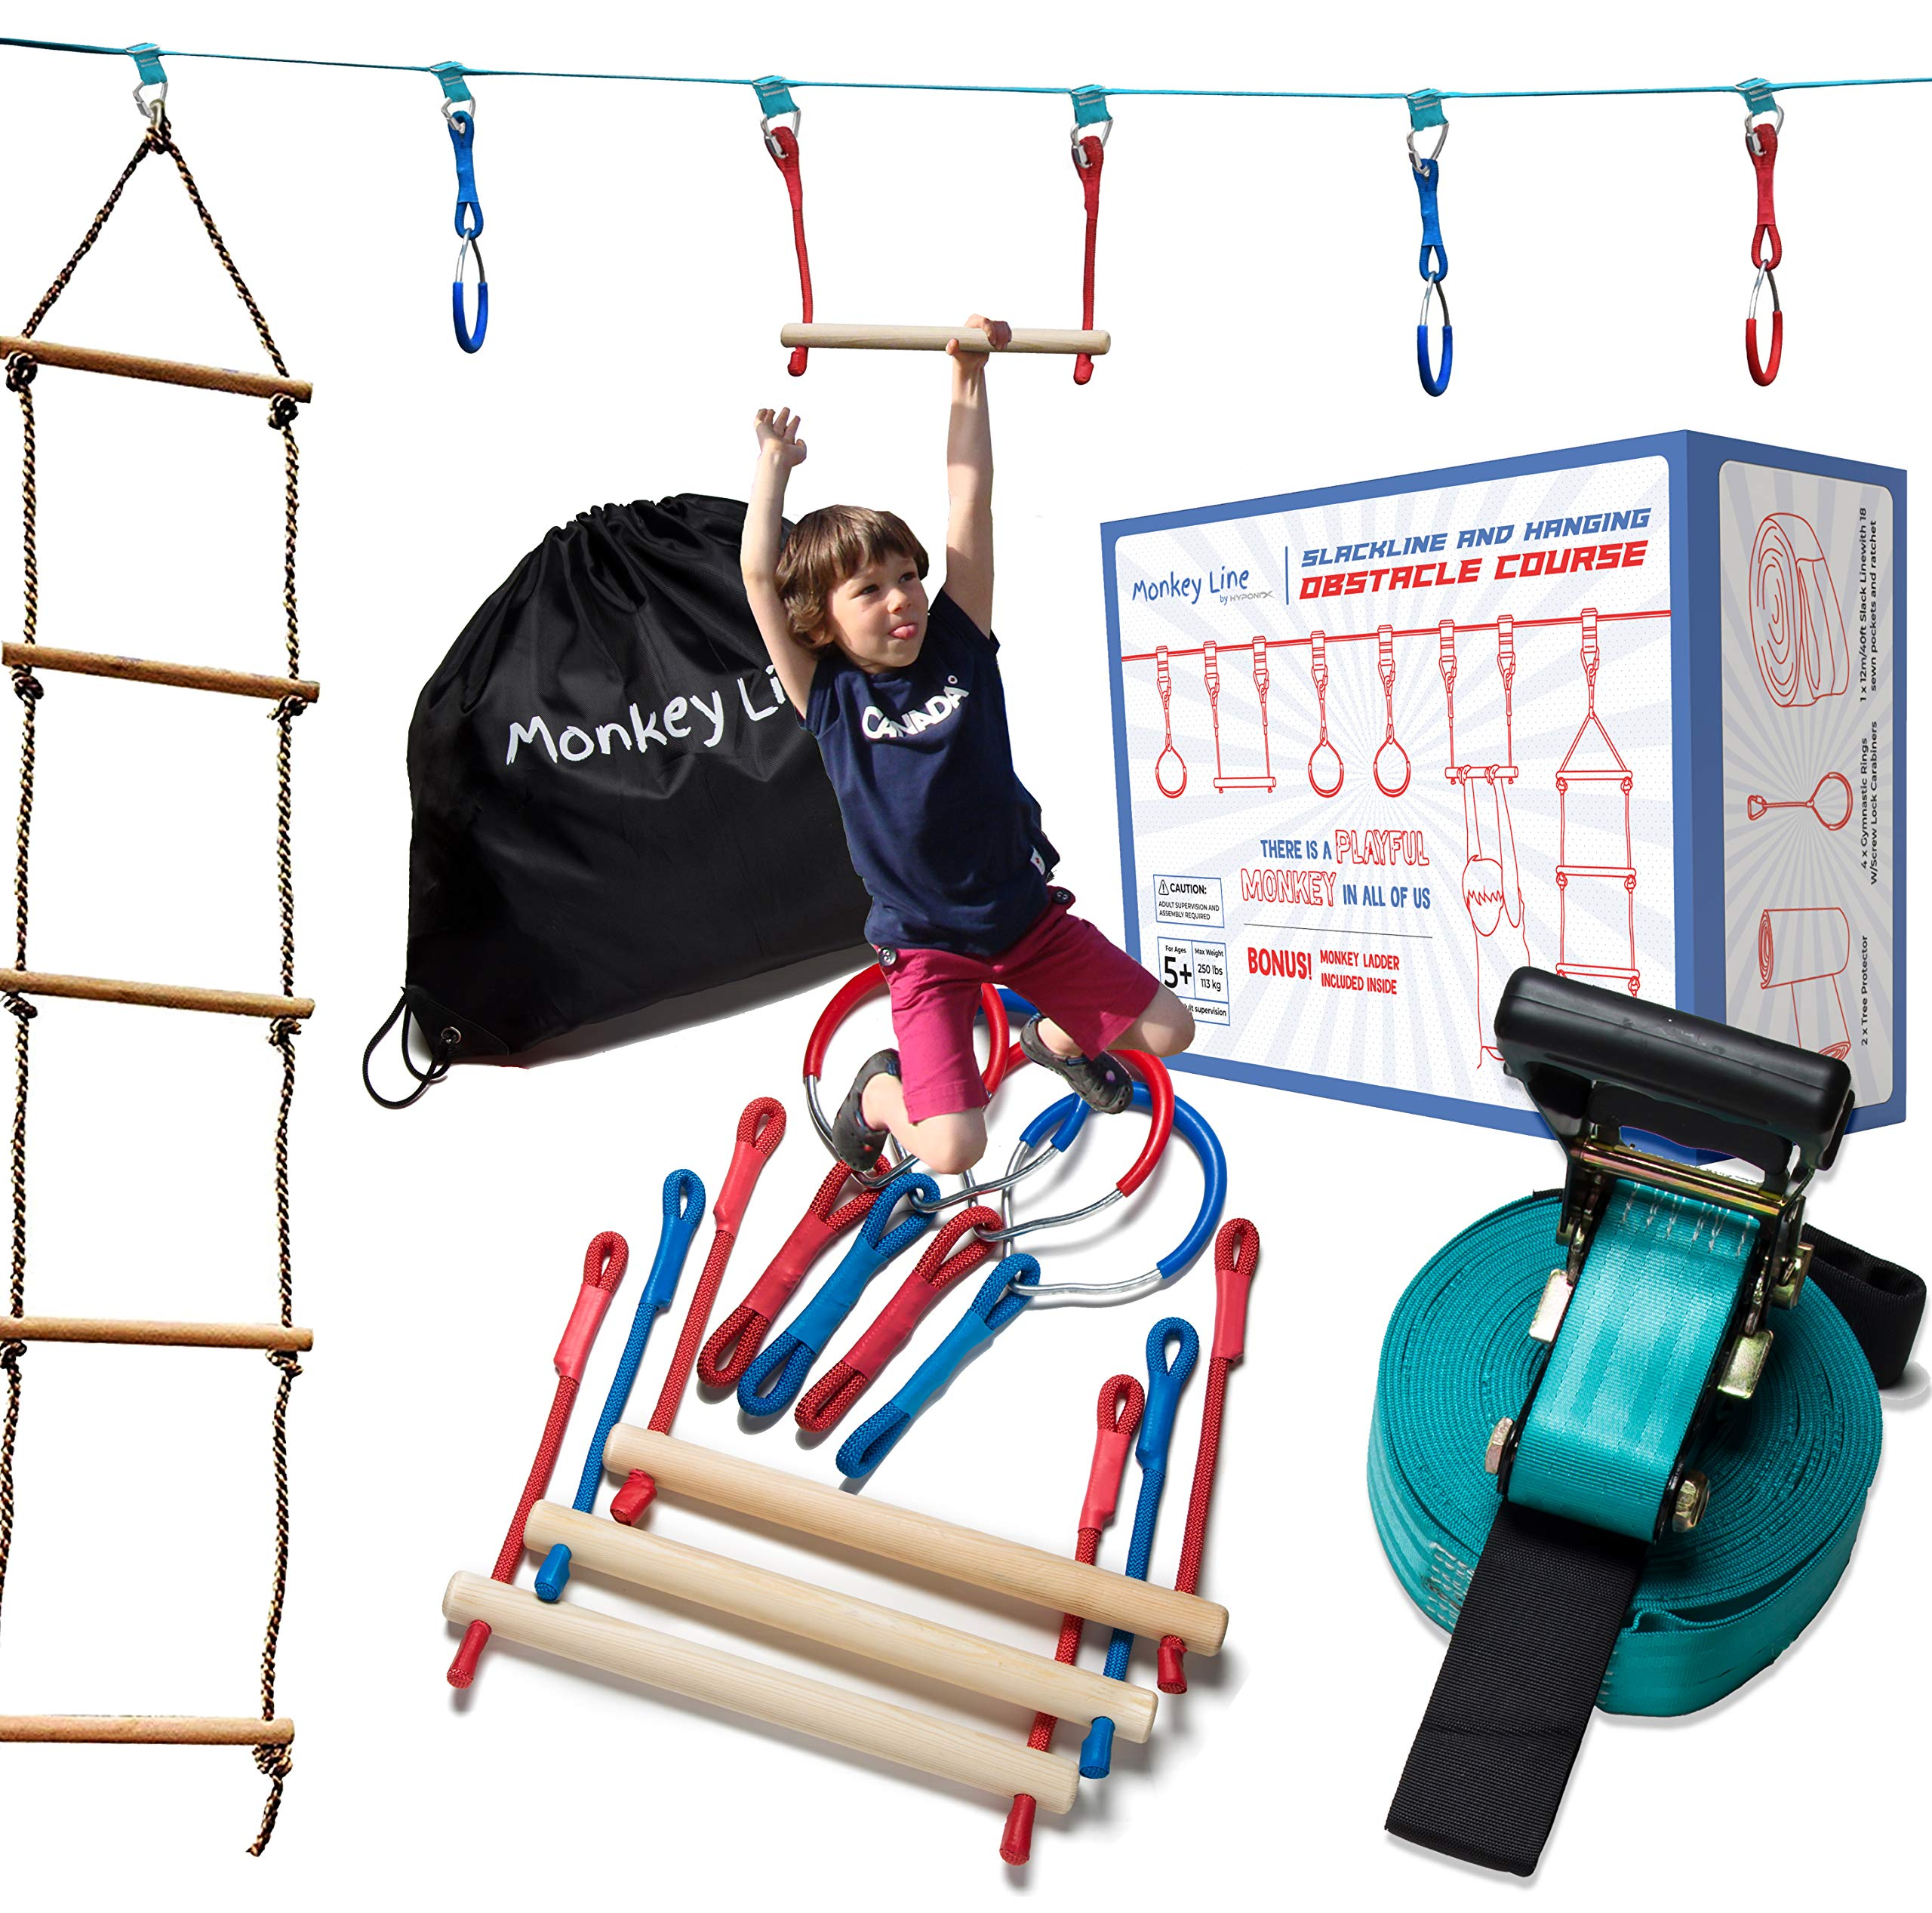 Ninja Warrior Training Equipment Kids 50' Feet | W/ Ladder | The Perfect Outdoor Ninja Line Hanging Obstacle Course | Ninja Warrior Obstacle Kit by Monkey Line